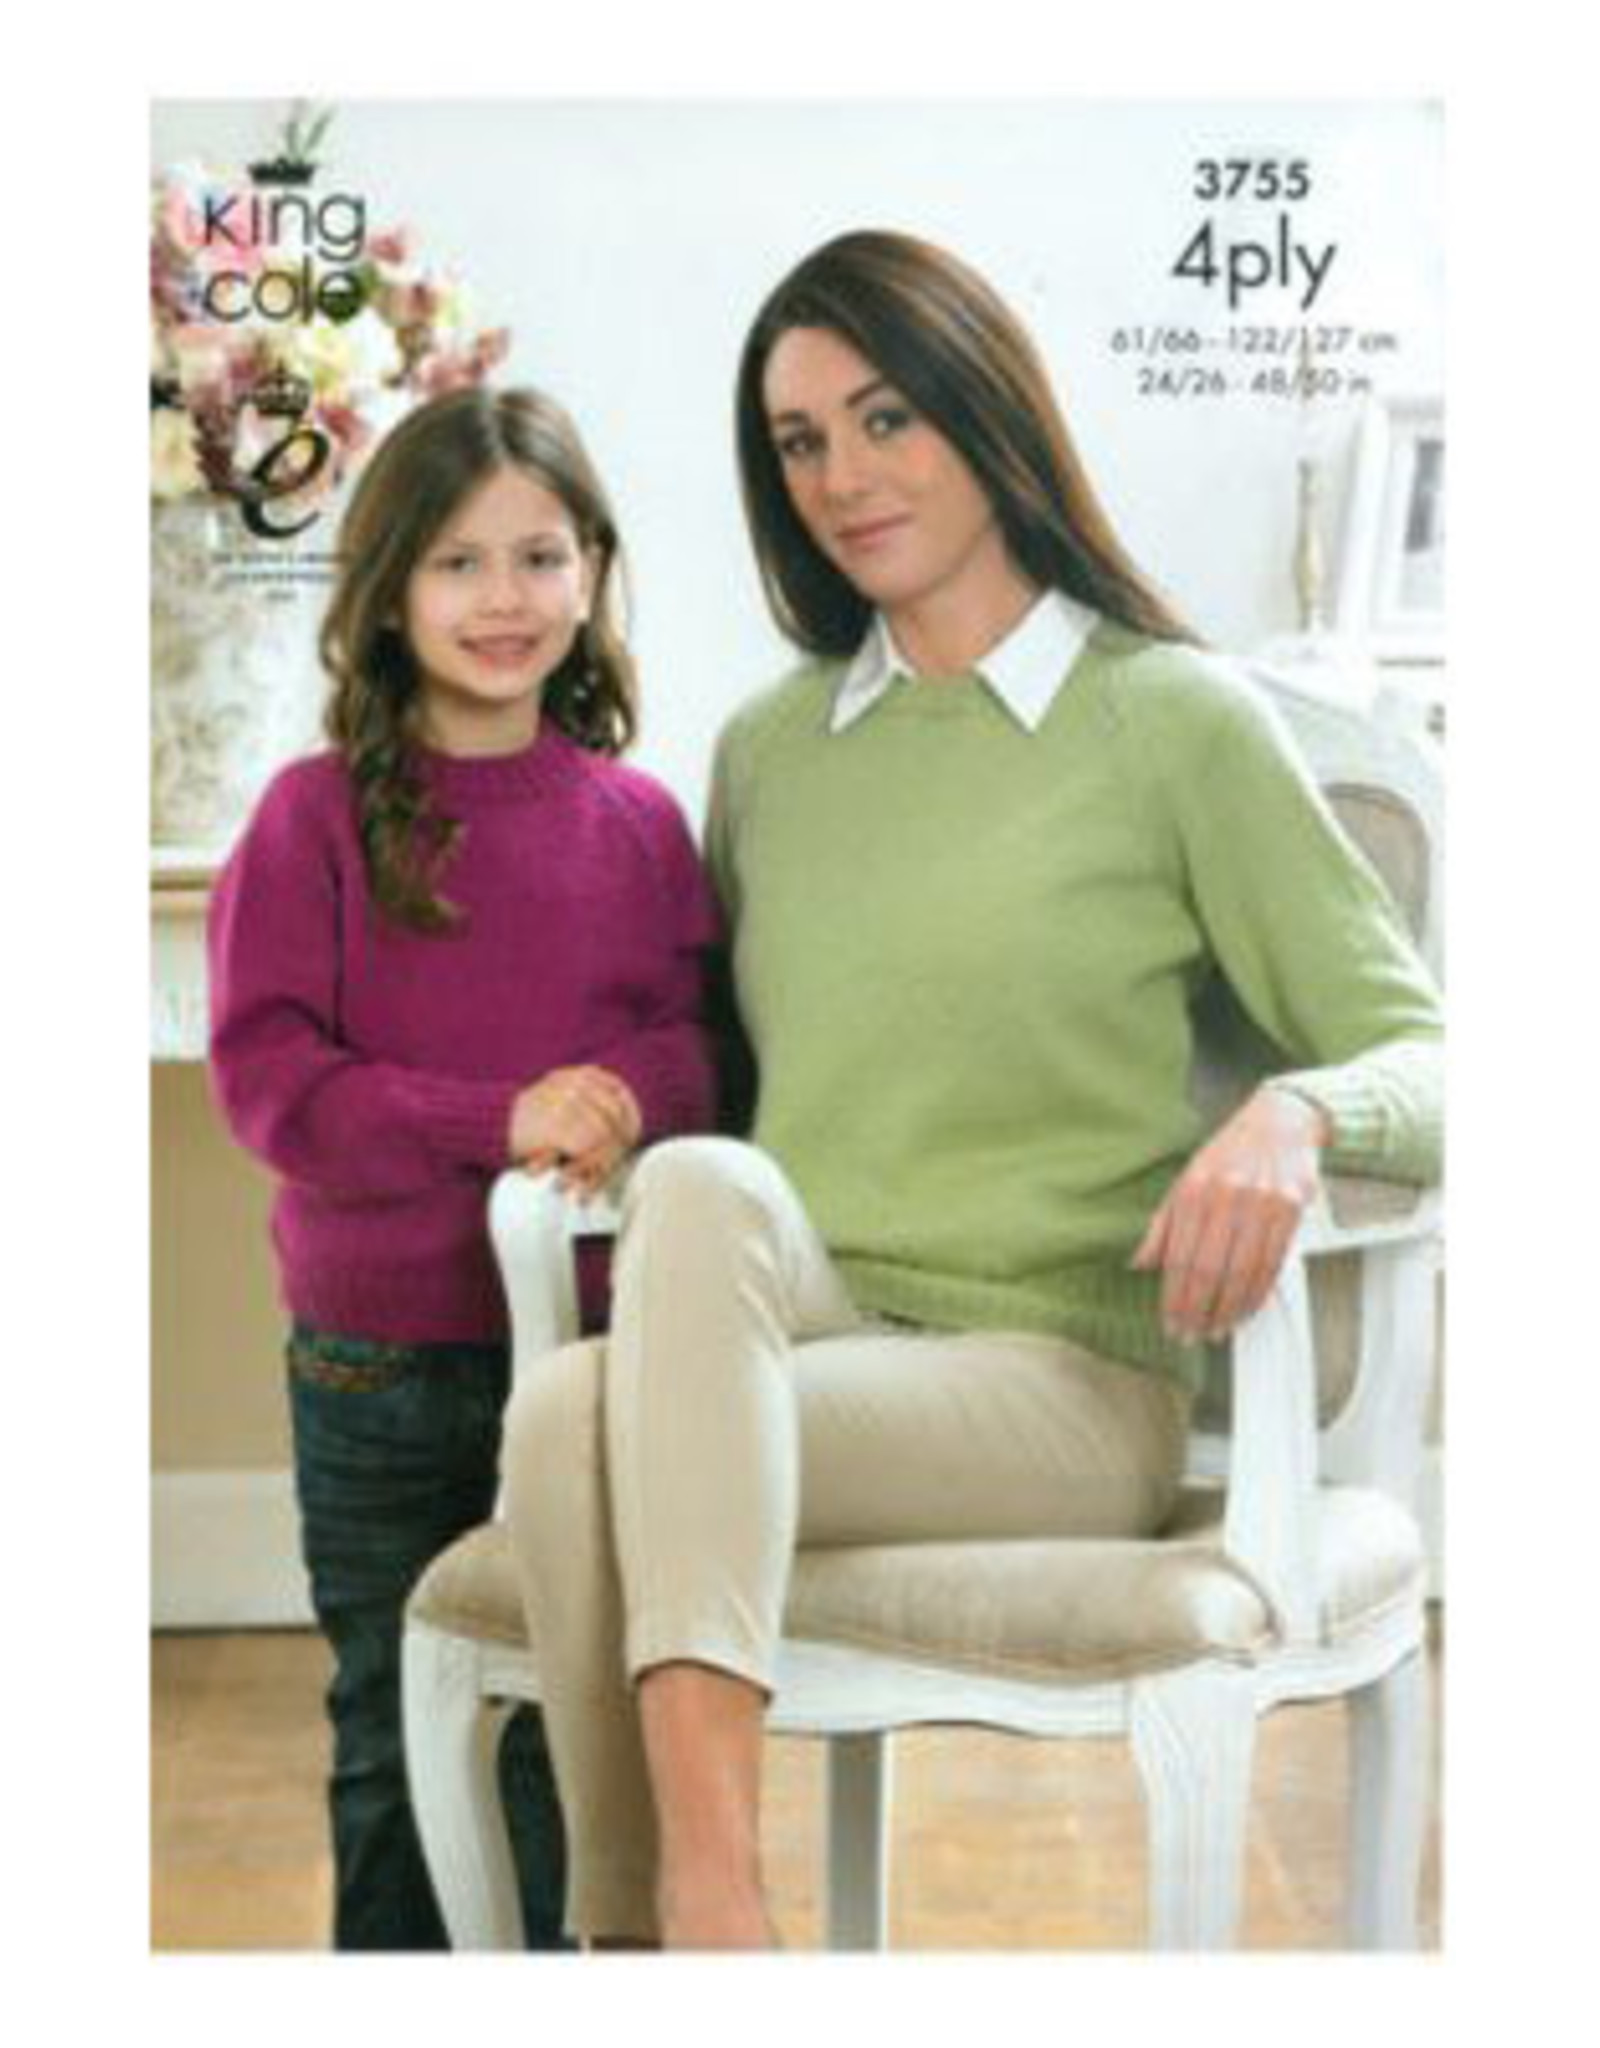 King Cole Pattern - 4ply Sweater, Unisex - 3755